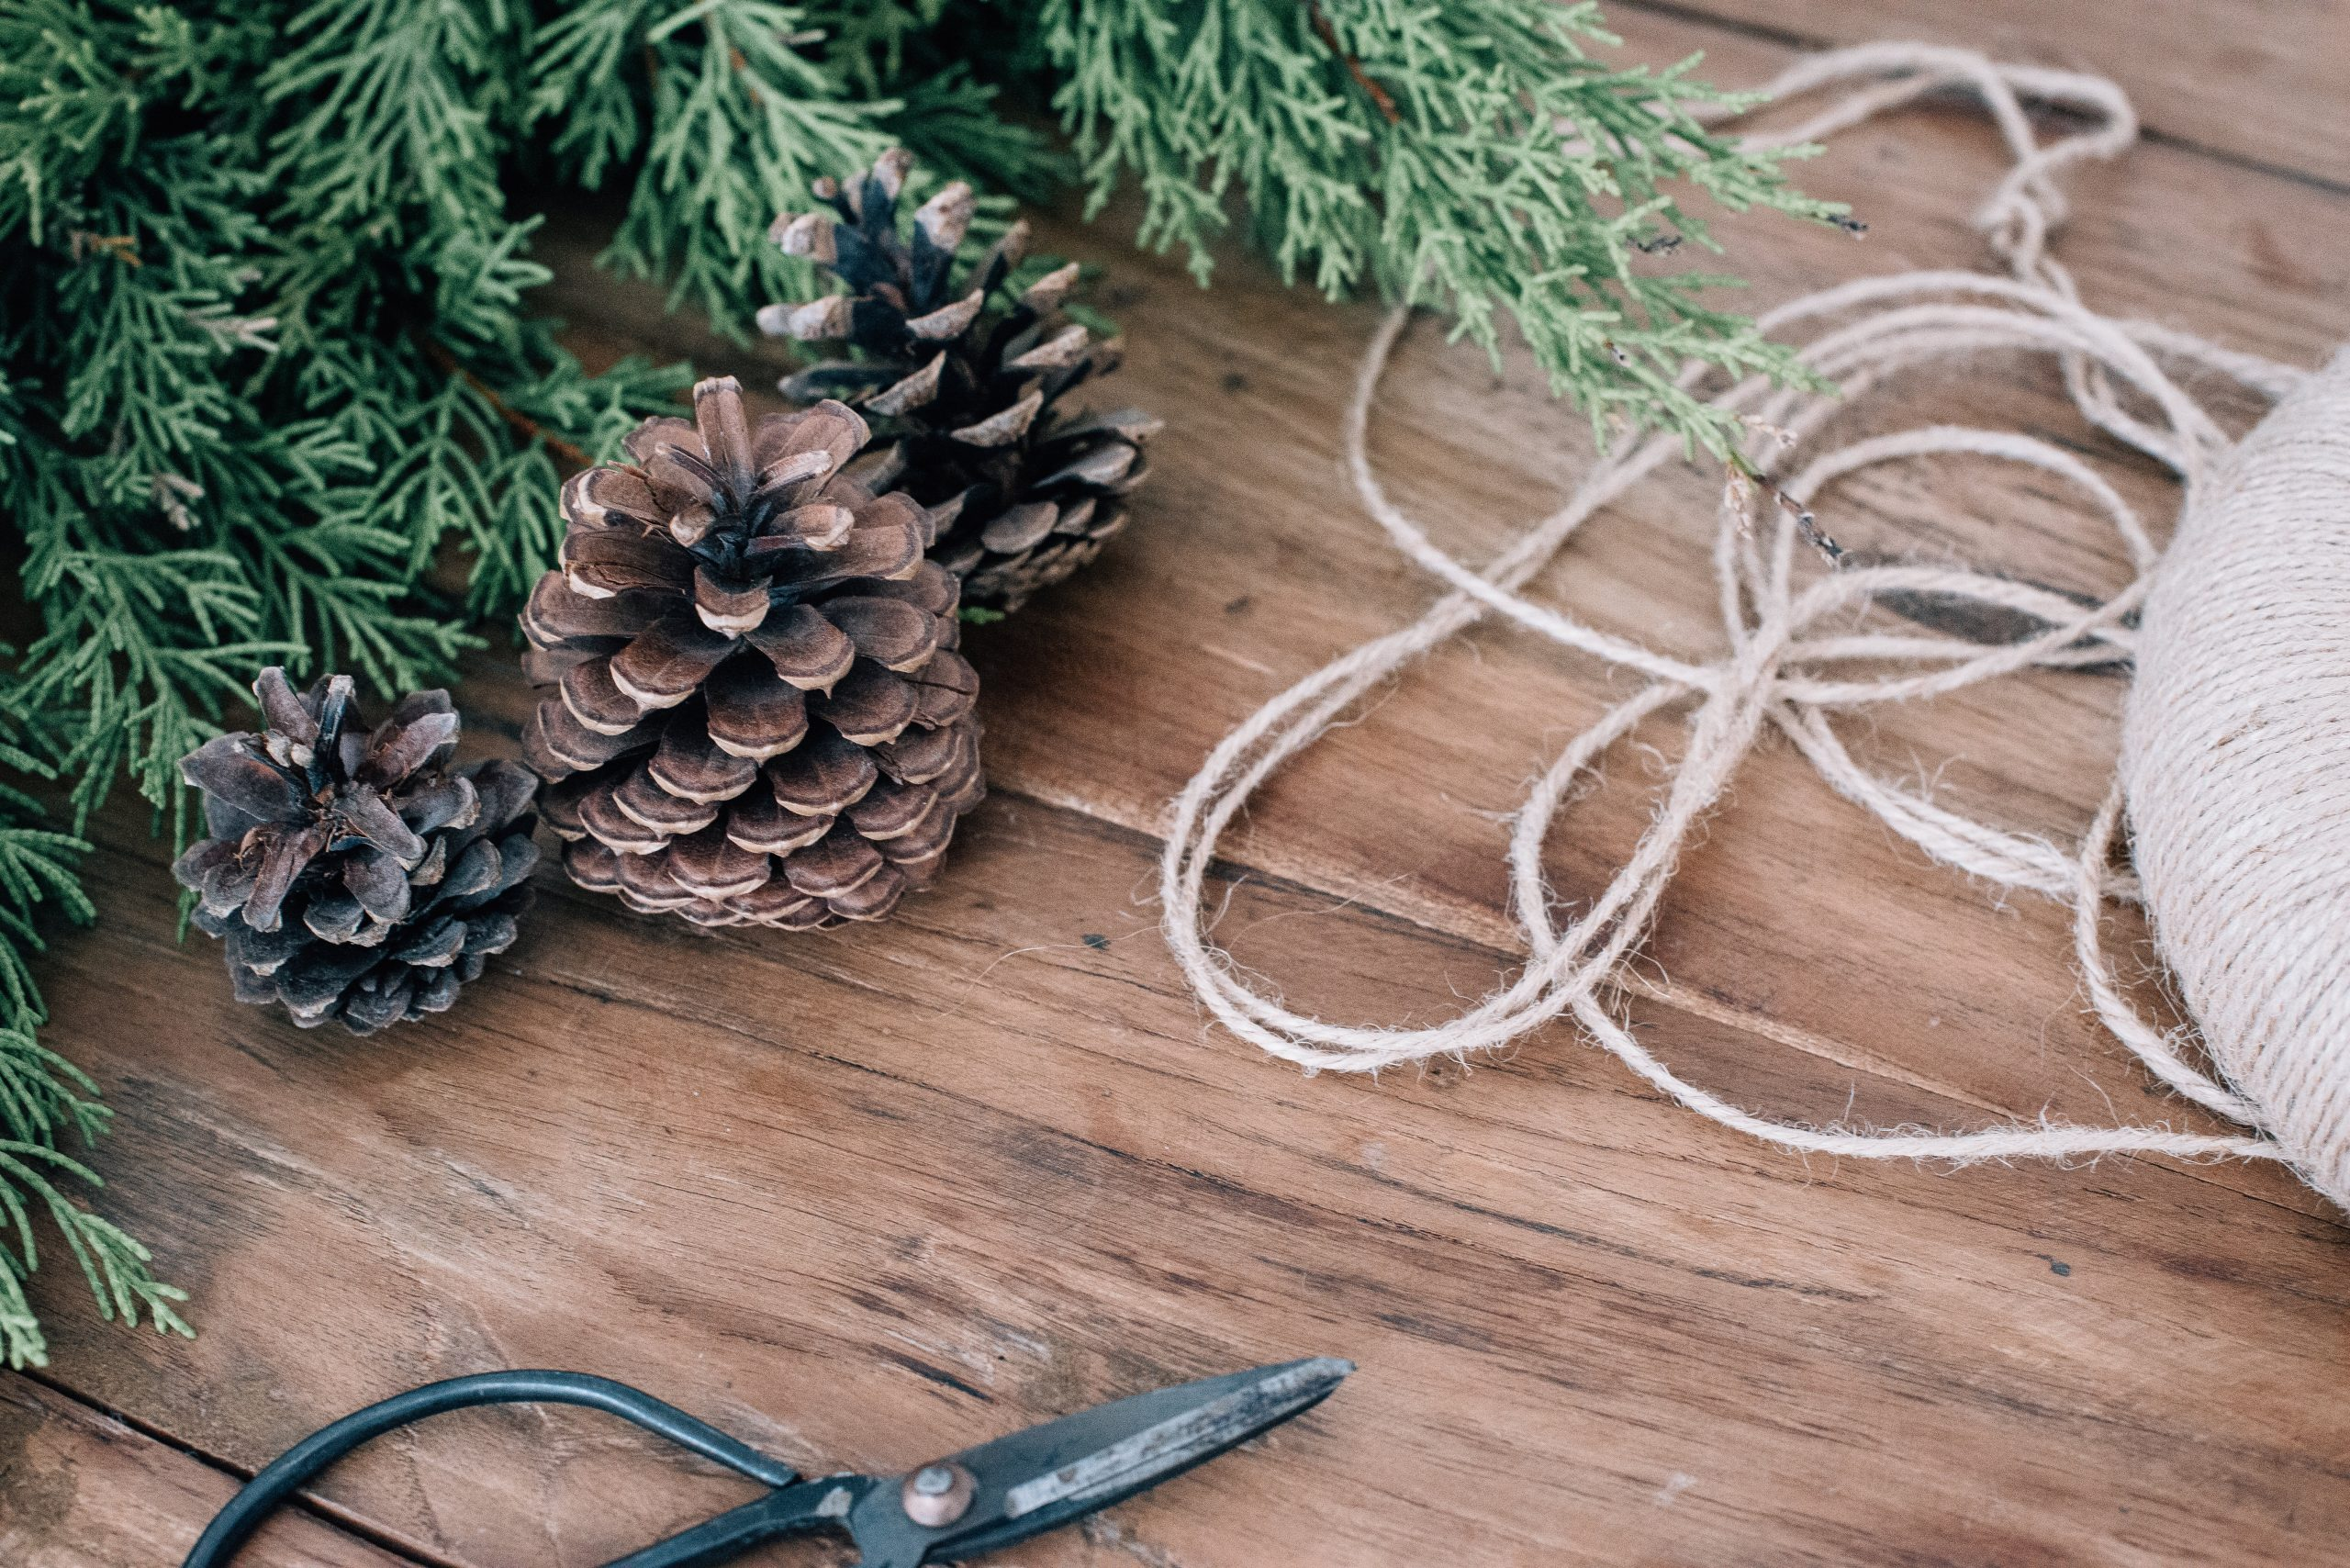 A Christmas tree alongside three pinecones, scissors, and a ball of thread.